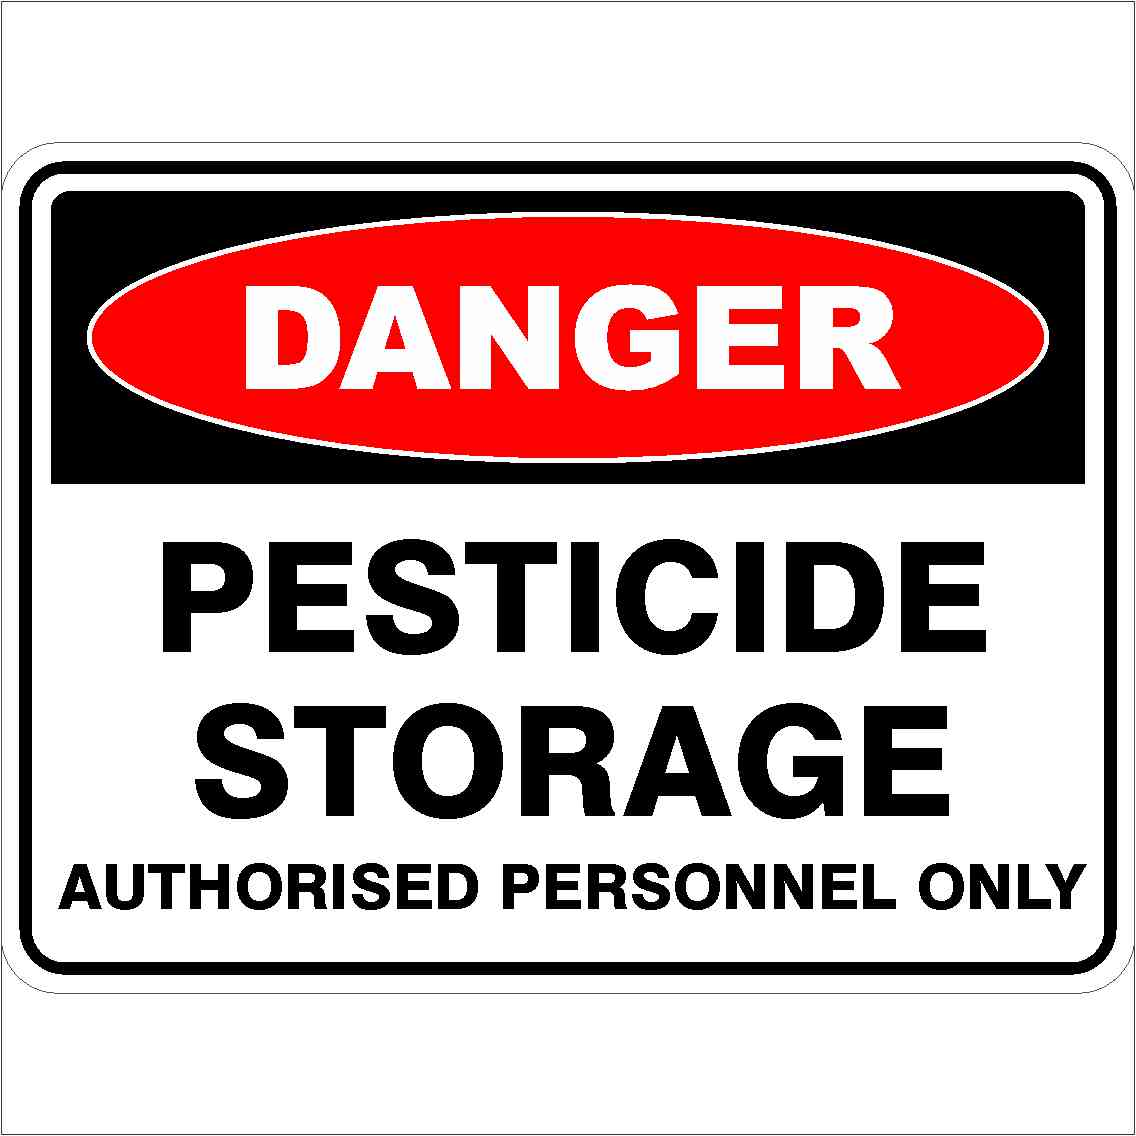 Danger Signs PESTICIDE STORAGE AUTHORISED PERSONNEL ONLY